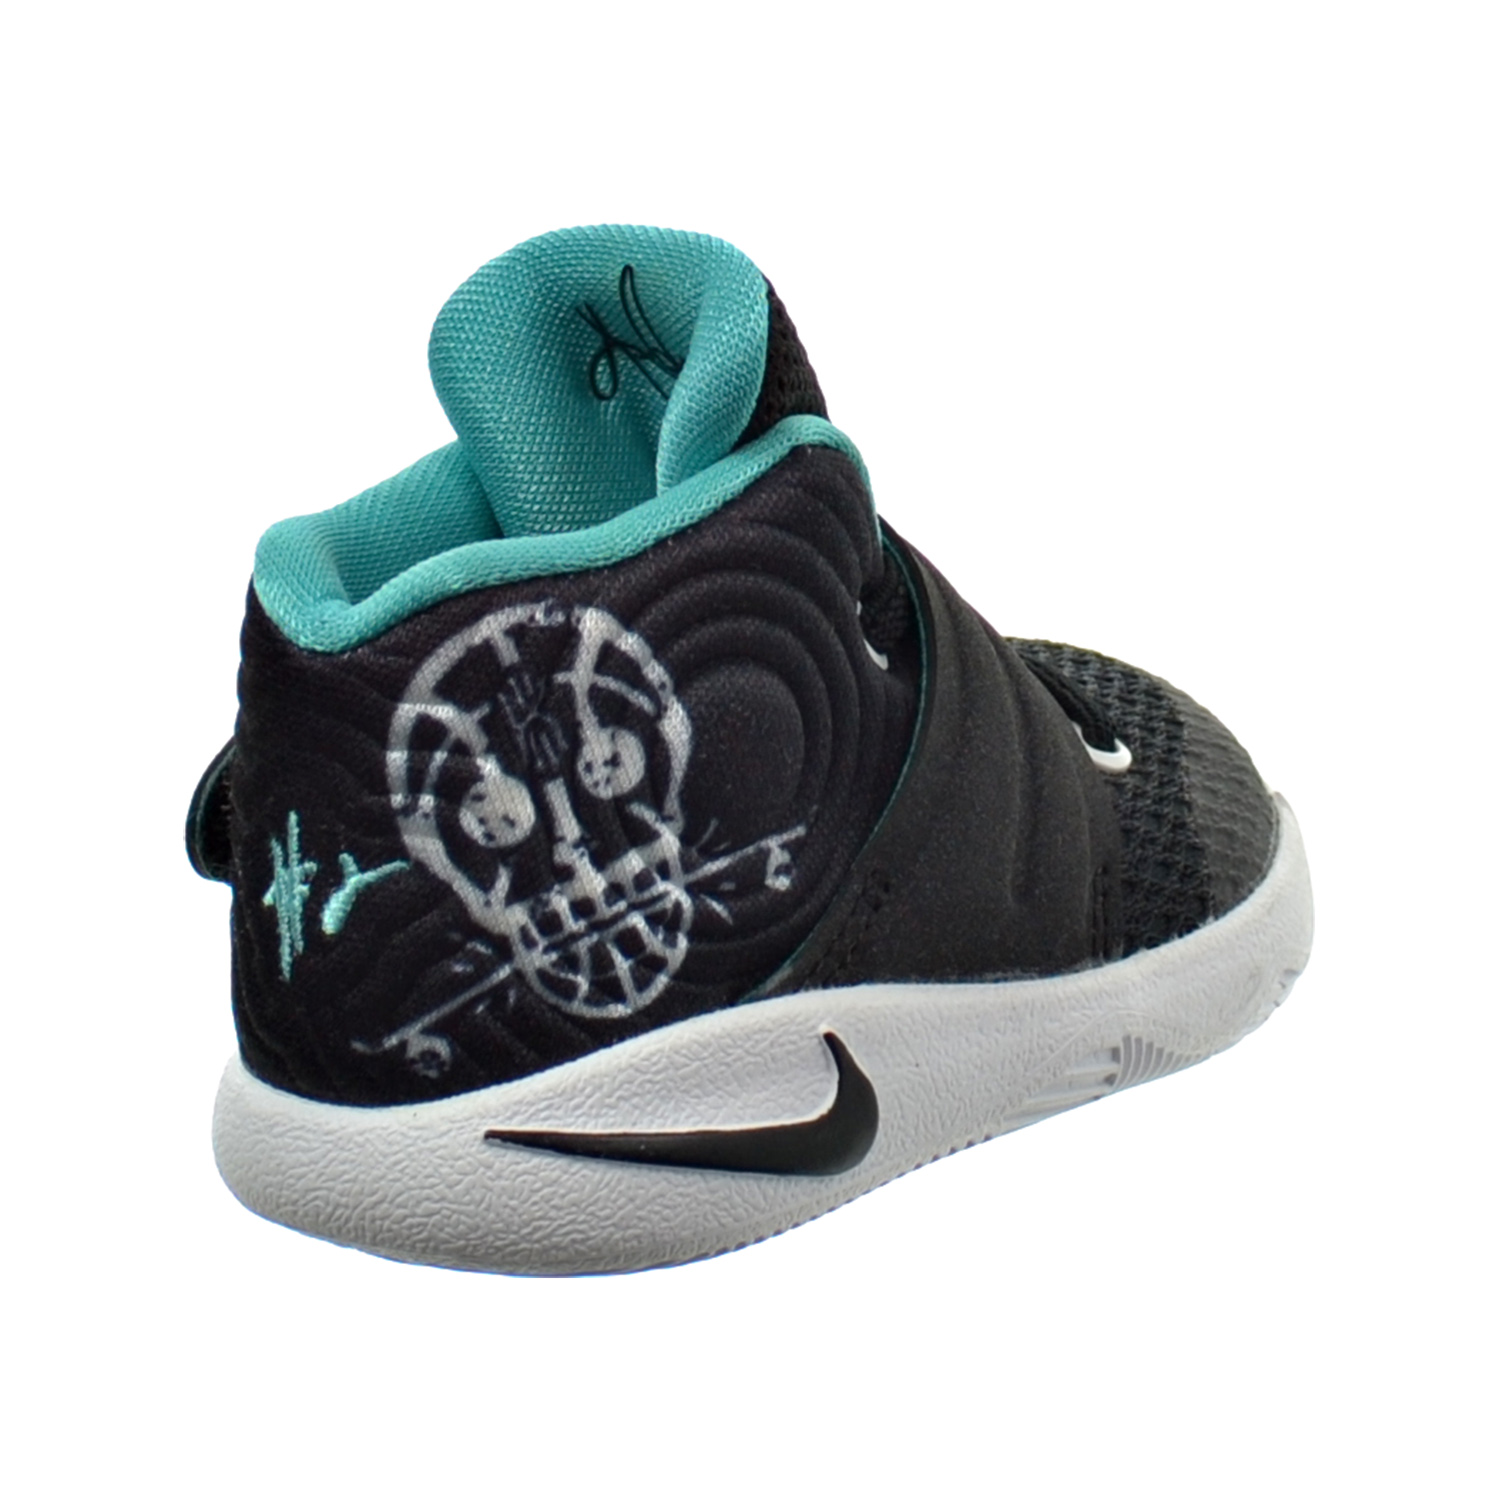 size 40 48409 598cb Details about Nike Kyrie 2 (TD) Toddler's Shoes Black/Hyper Jade/White  827281-001